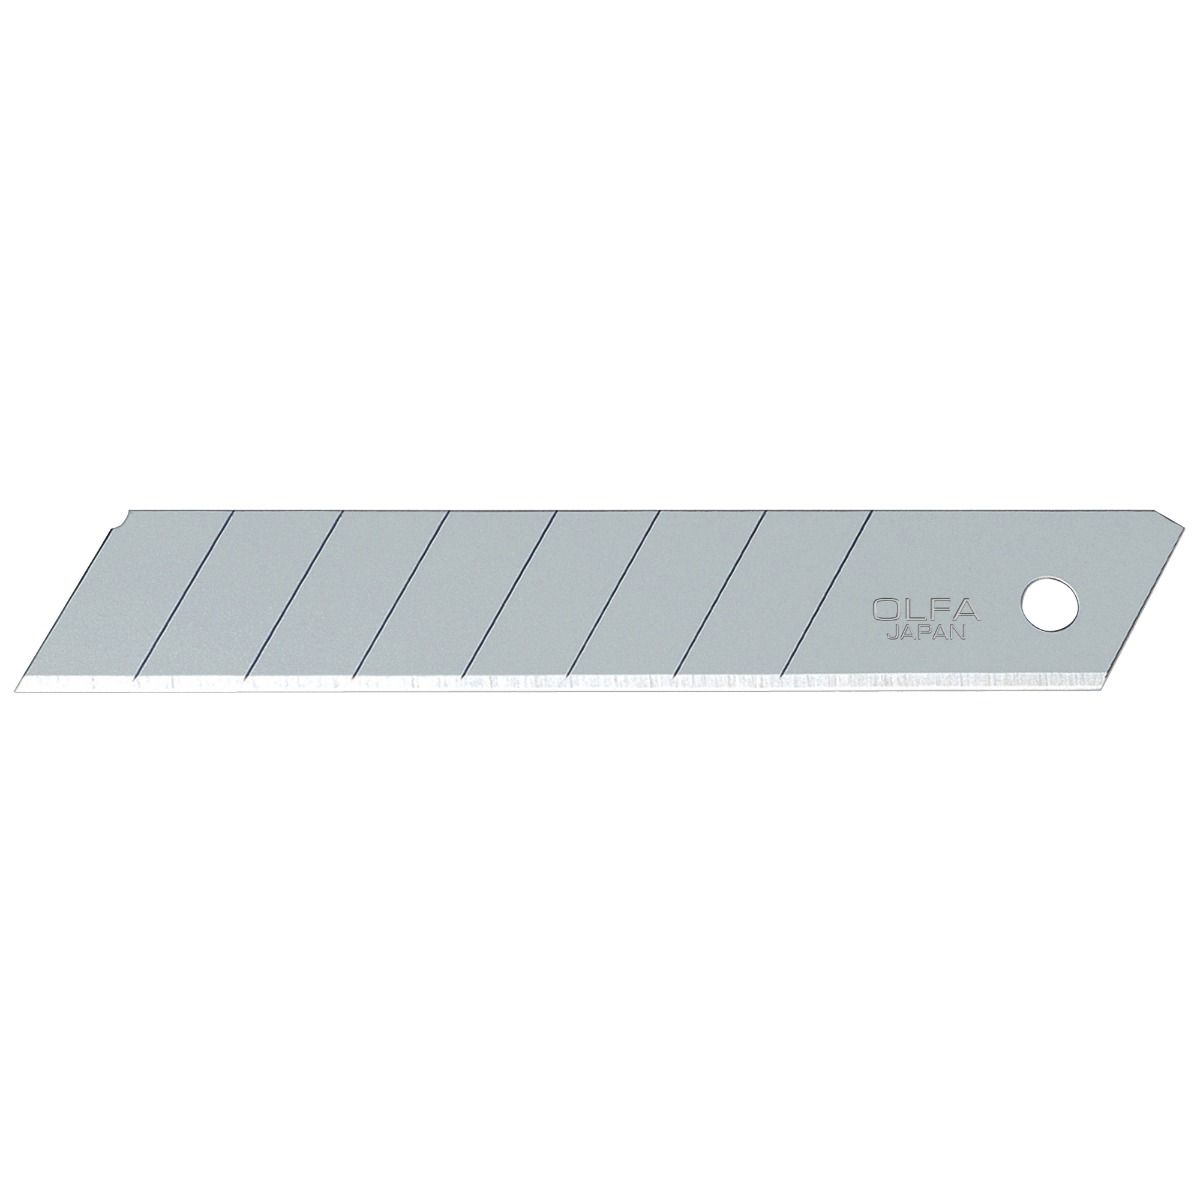 OLFA 18mm Replacement Blades 10pk